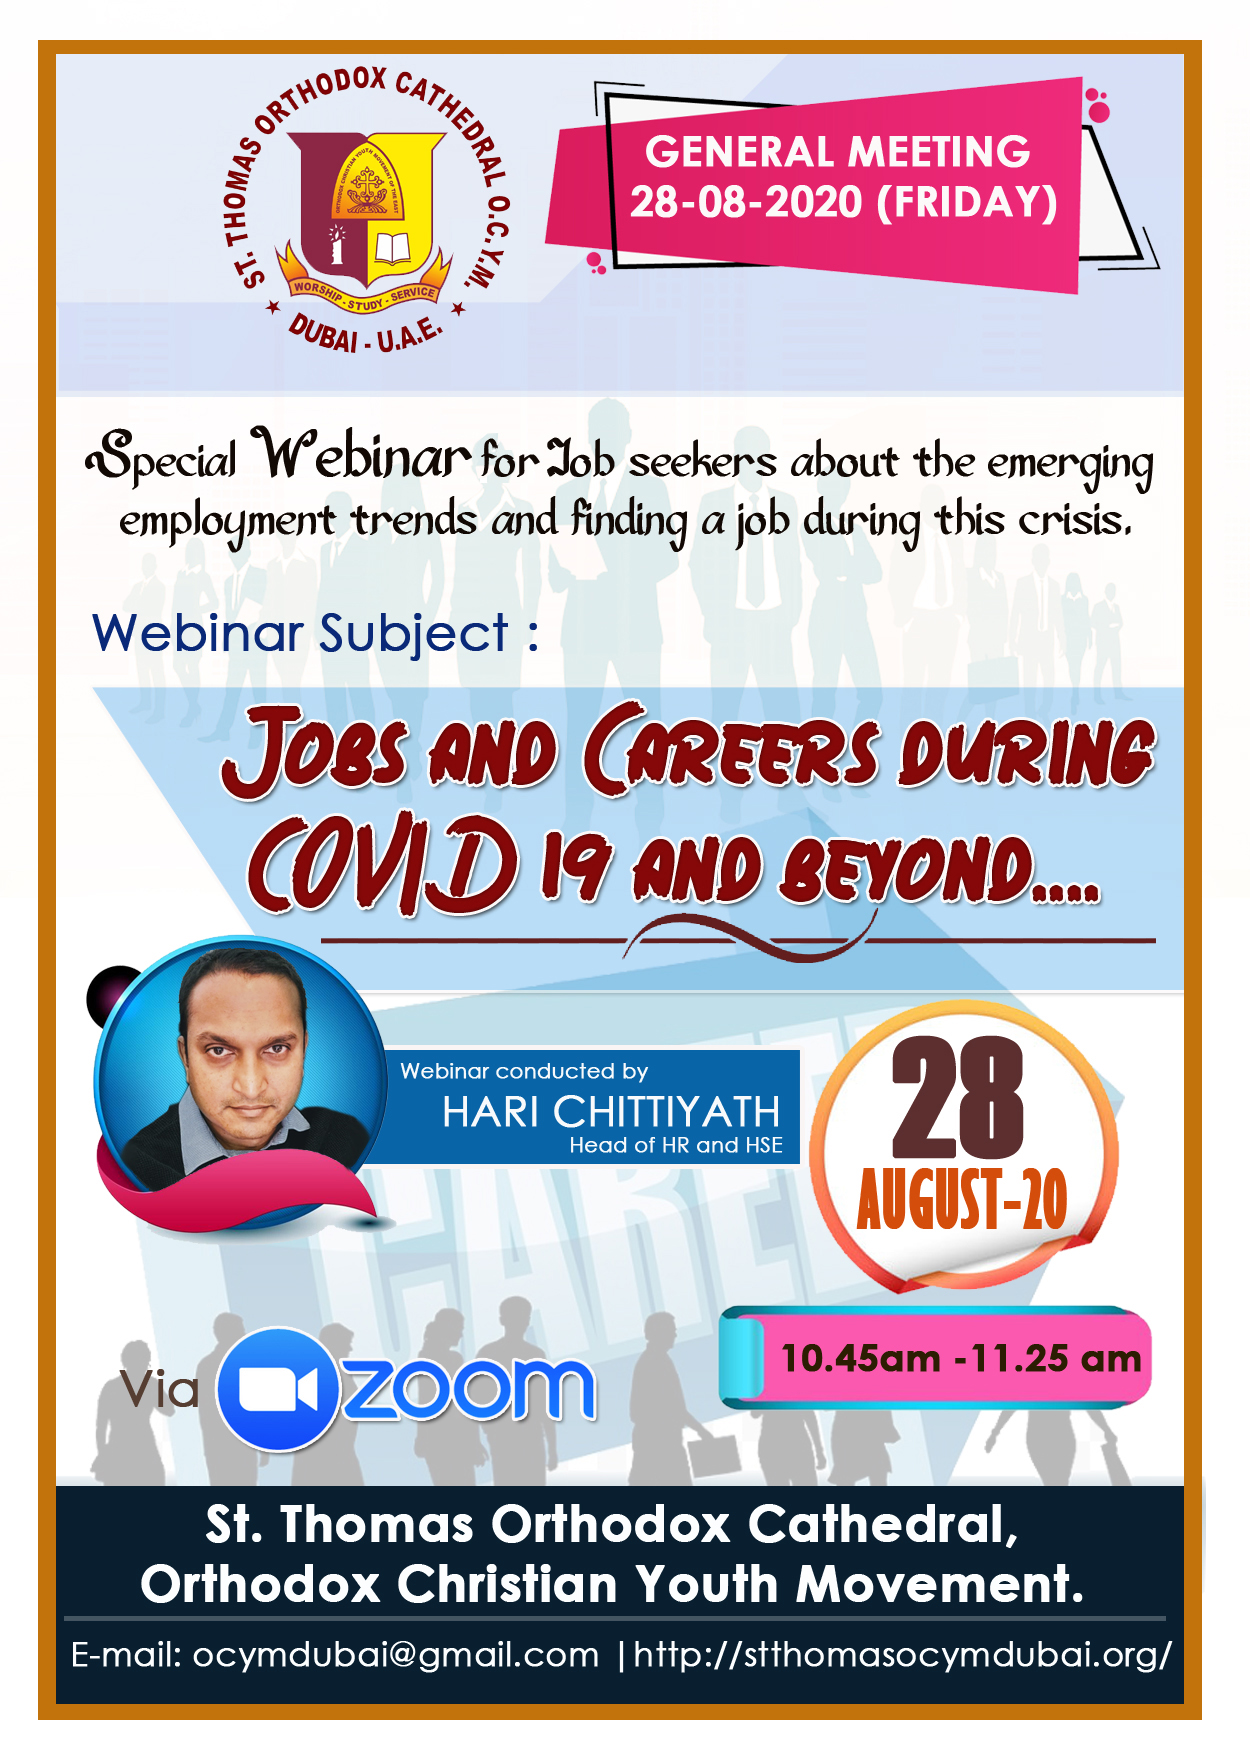 Webinar  : Jobs and Careers during COVID 19 and beyond എന്ന വിഷയത്തിൽ